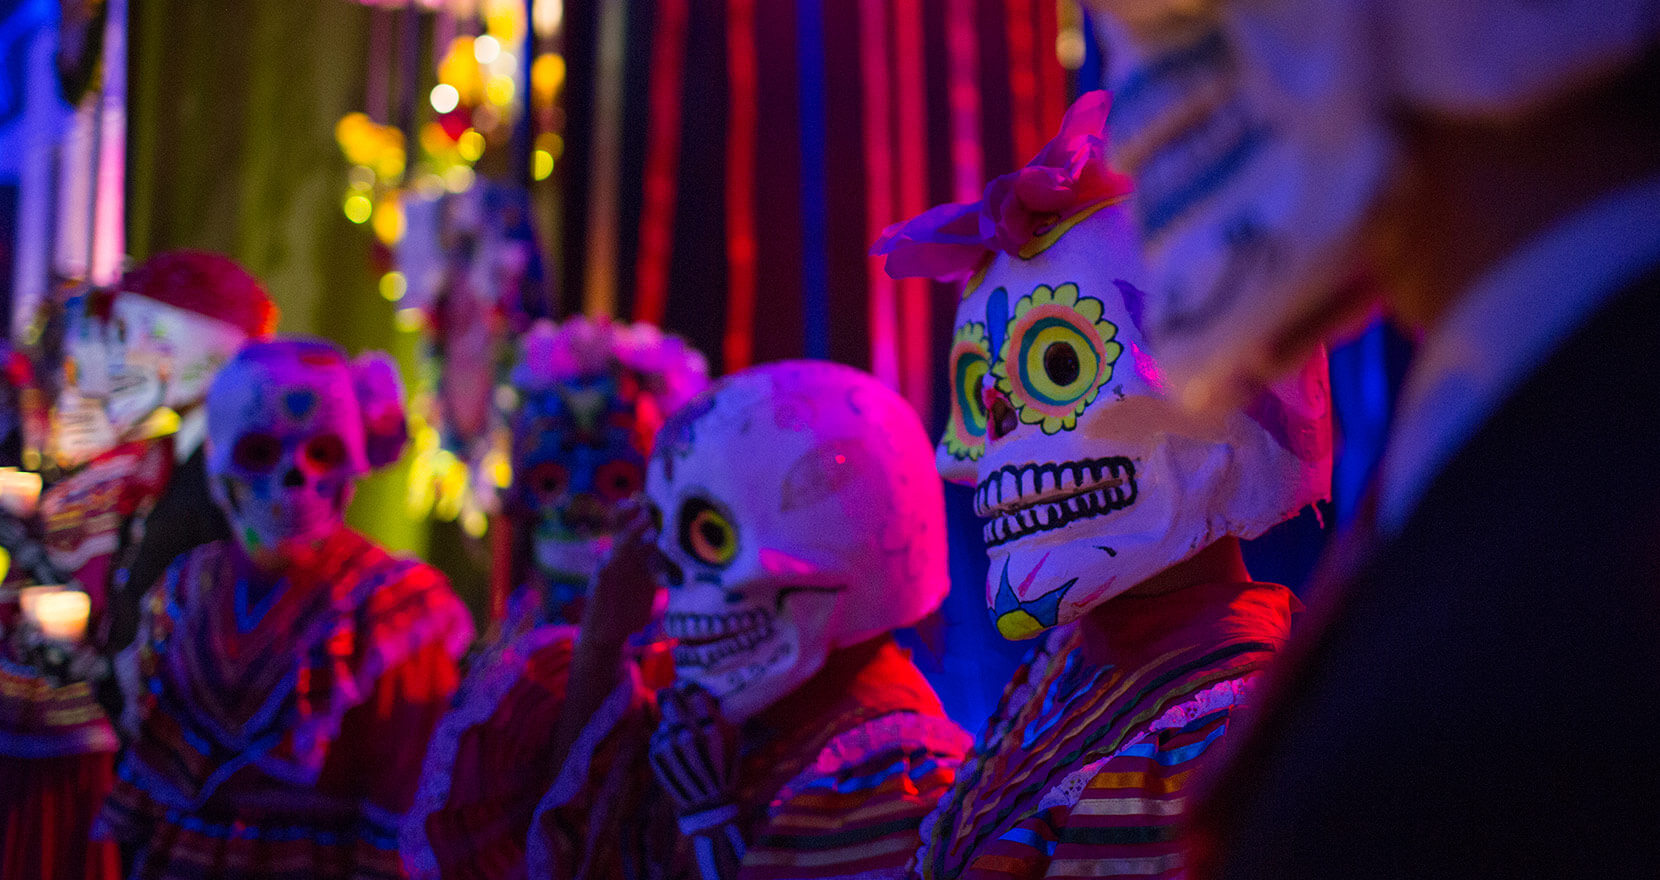 The Vacation of a Lifetime: Fiesta de los Muertos